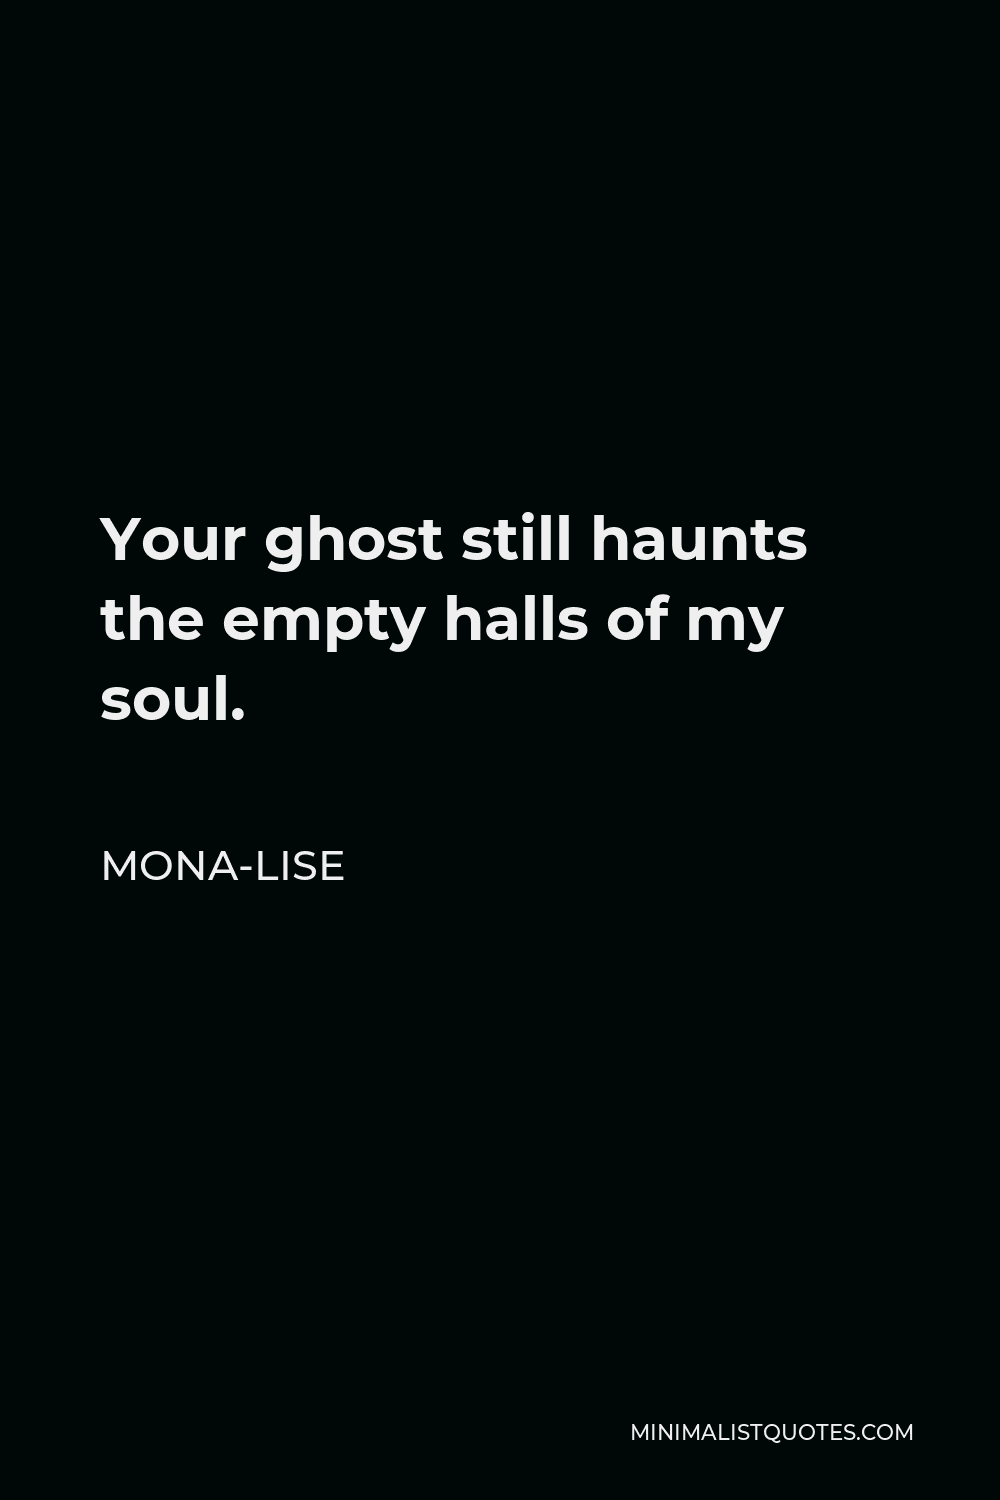 Mona-Lise Quote - Your ghost still haunts the empty halls of my soul.